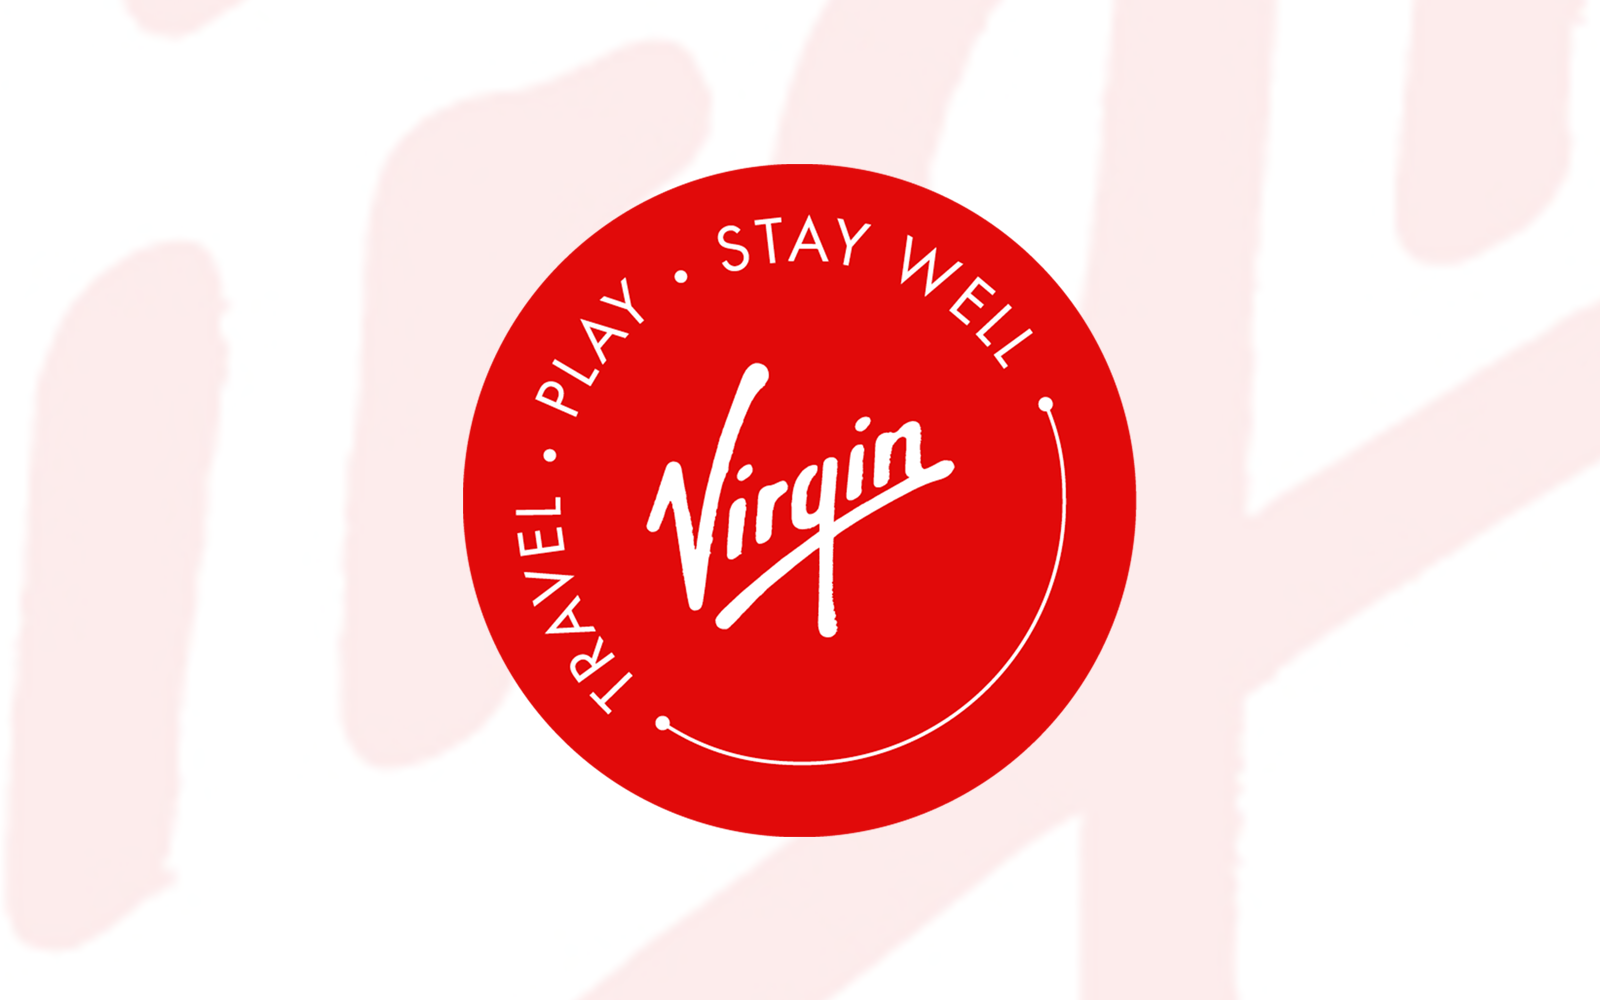 Travel, Play, Stay Well logo